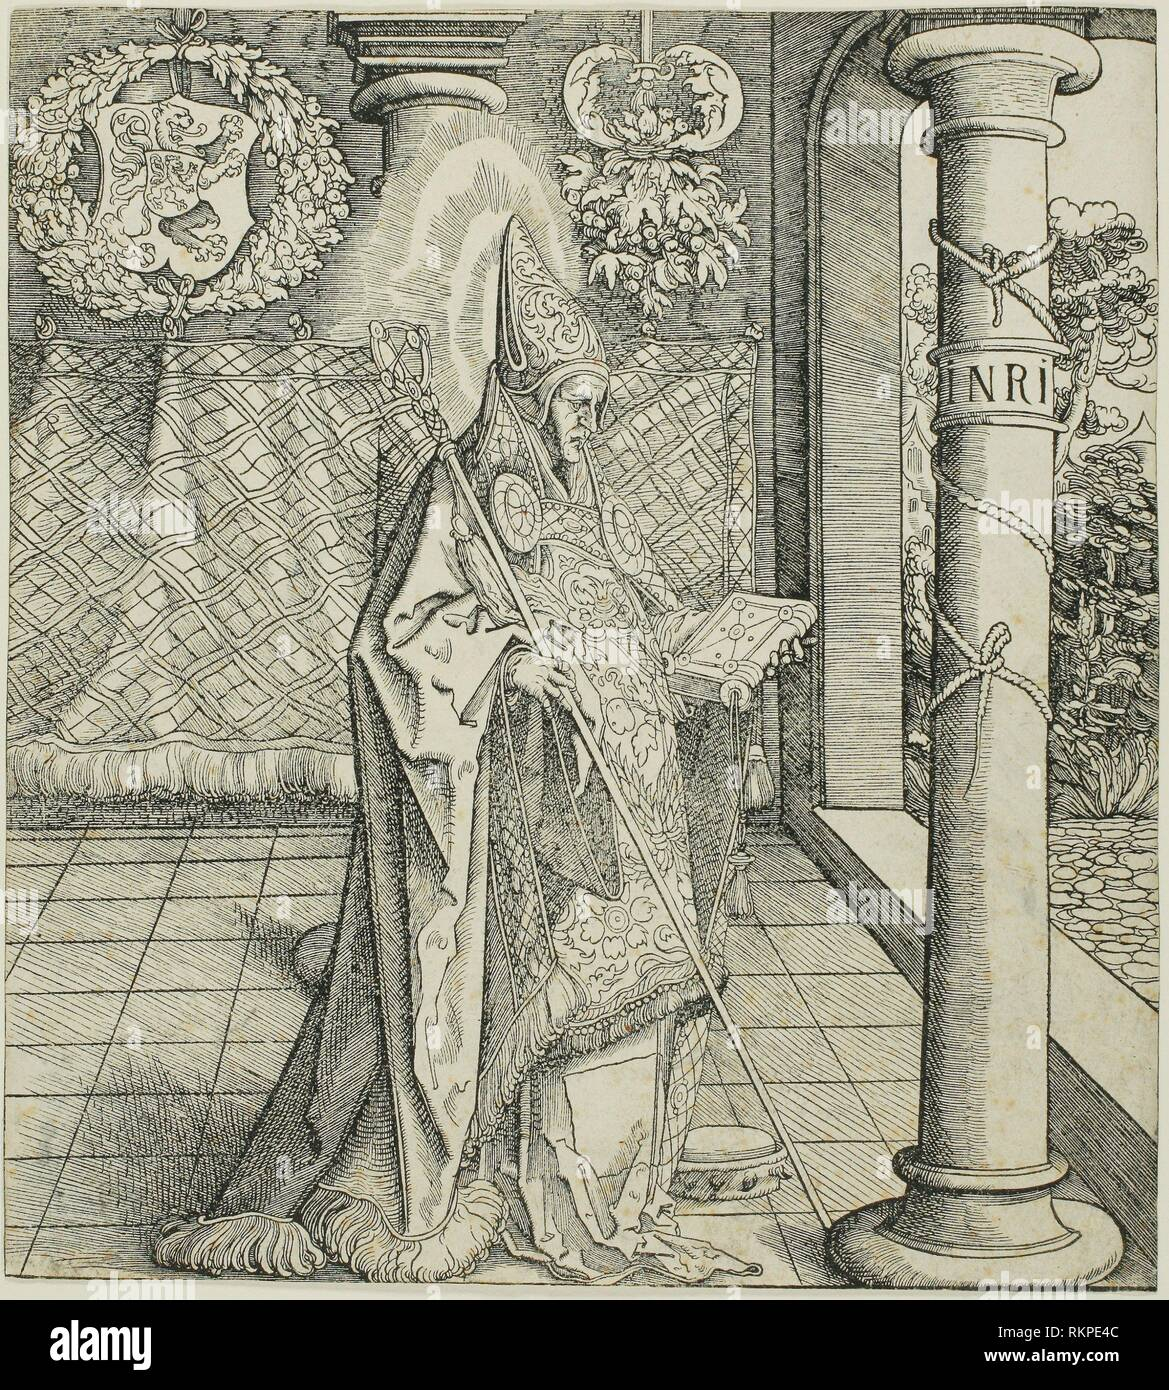 Saint Emesbertus, from Saints Connected with the House of Habsburg - 1522/1551 - Leonhard Beck (German, c. 1480-1542) carved by Wolfgang Resch - Stock Image